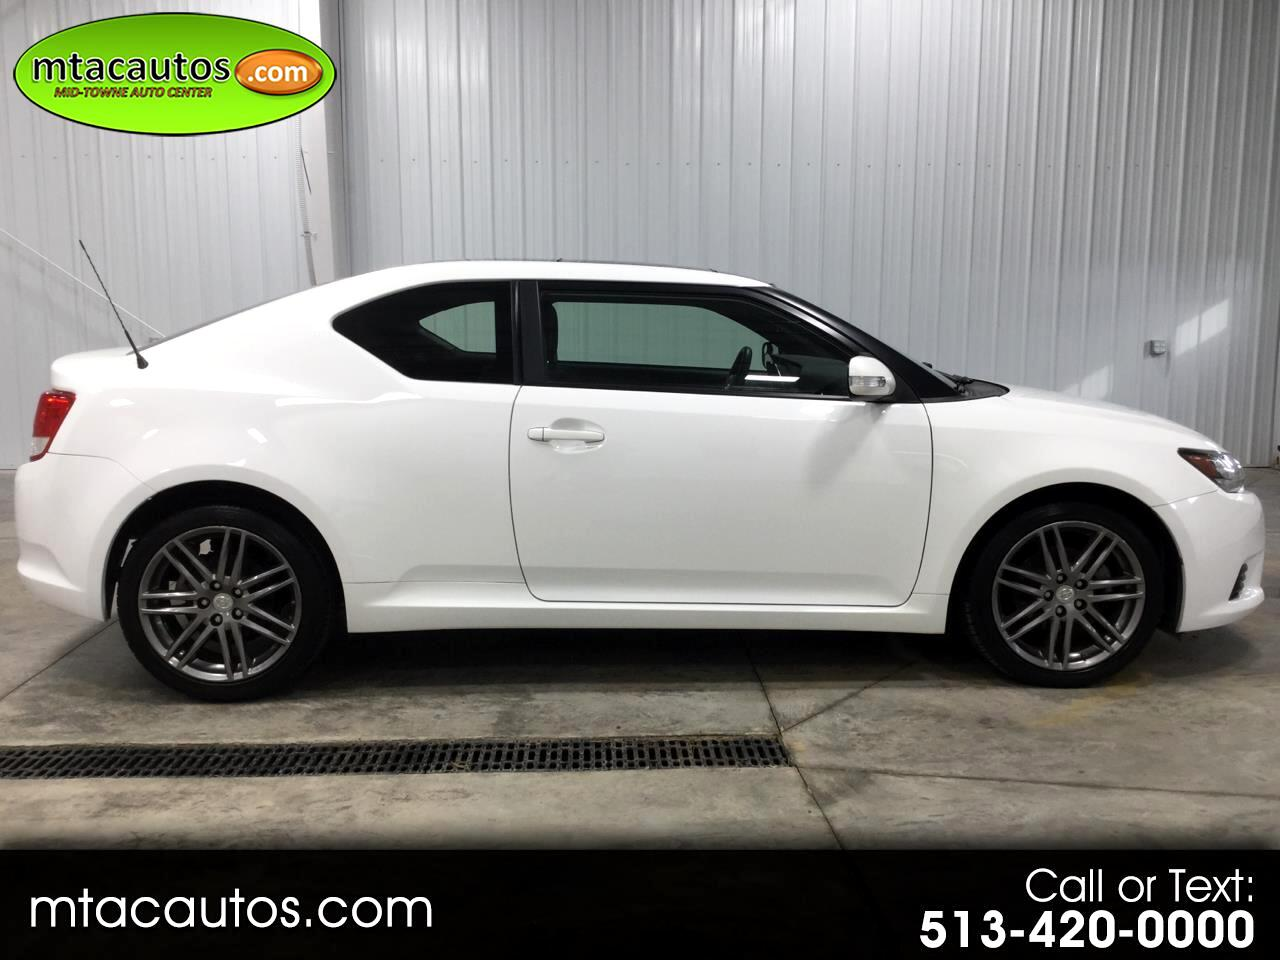 2012 Scion tC 2dr HB Auto Monogram (Natl)